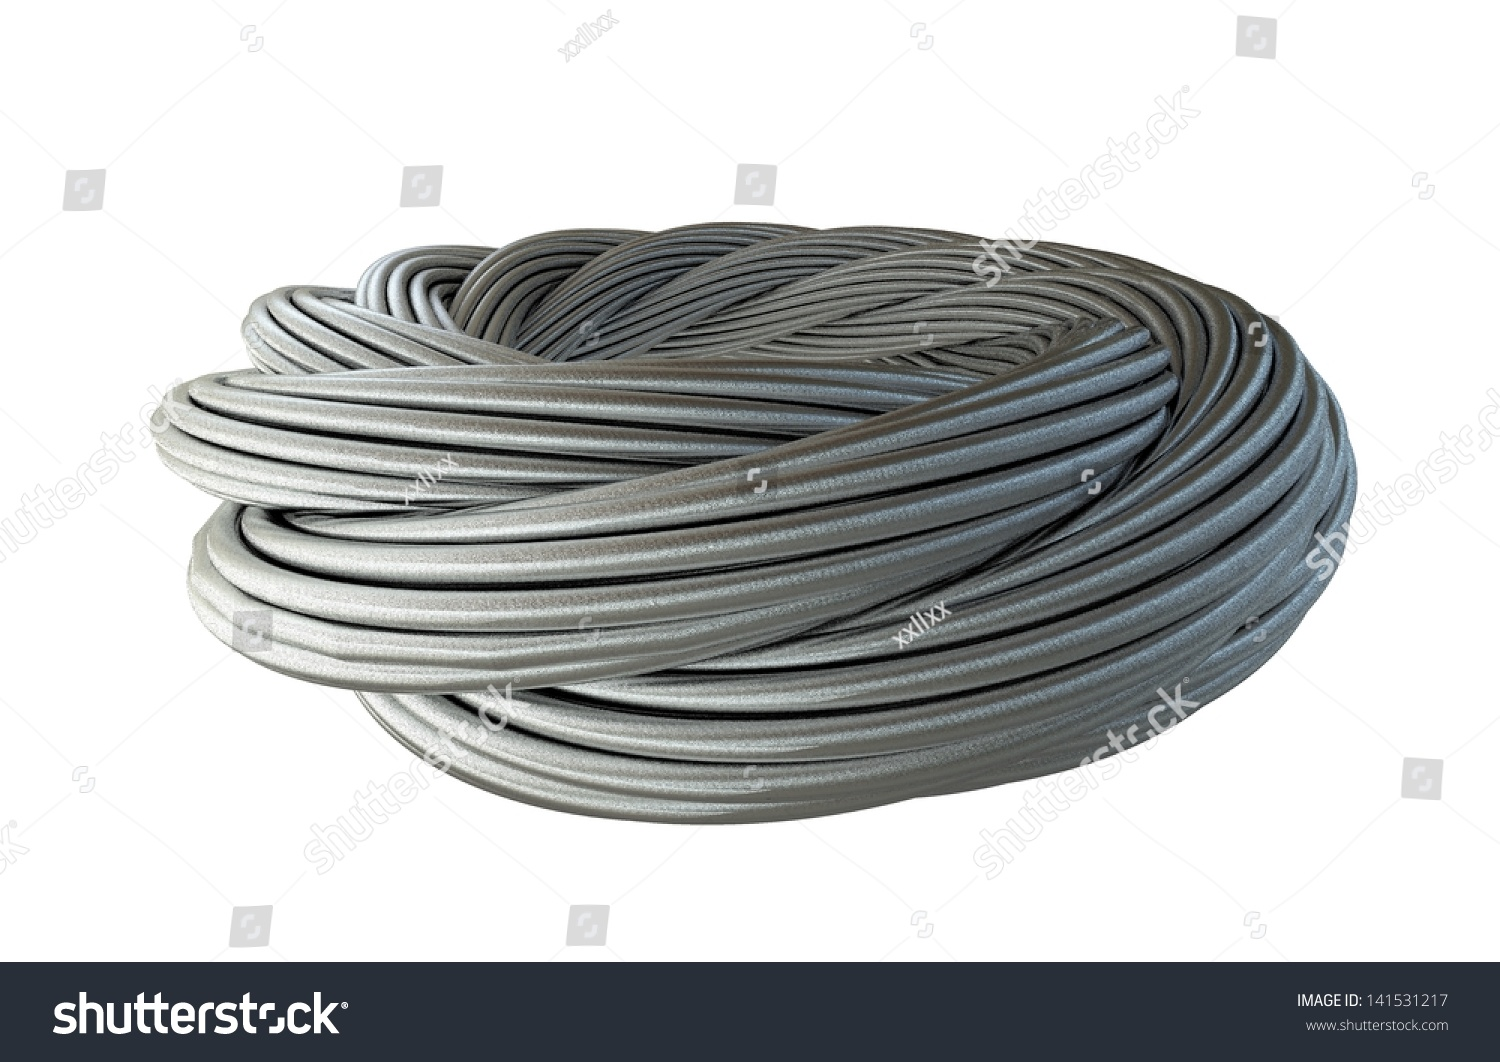 Metal Thick Wreath Twisted Wire Cable Stock Illustration 141531217 ...